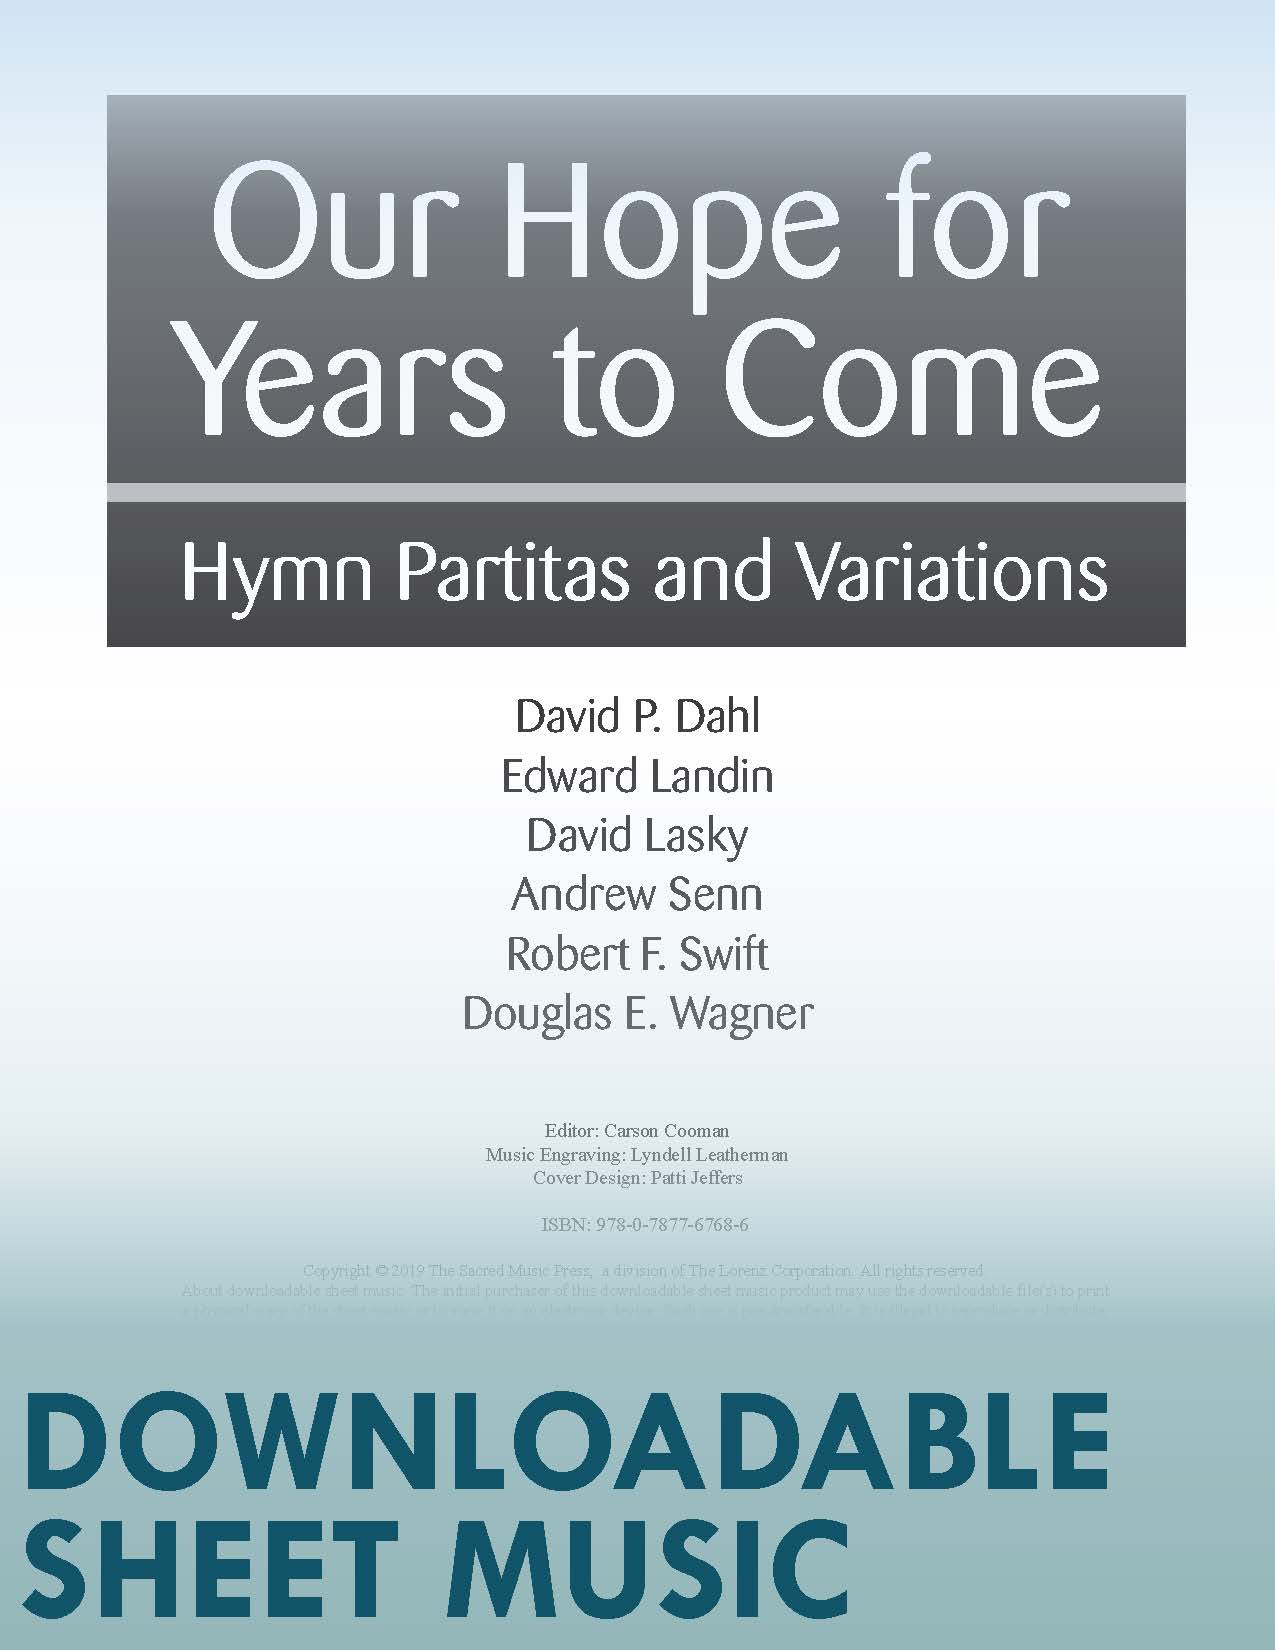 Our Hope for Years to Come - Digital Download